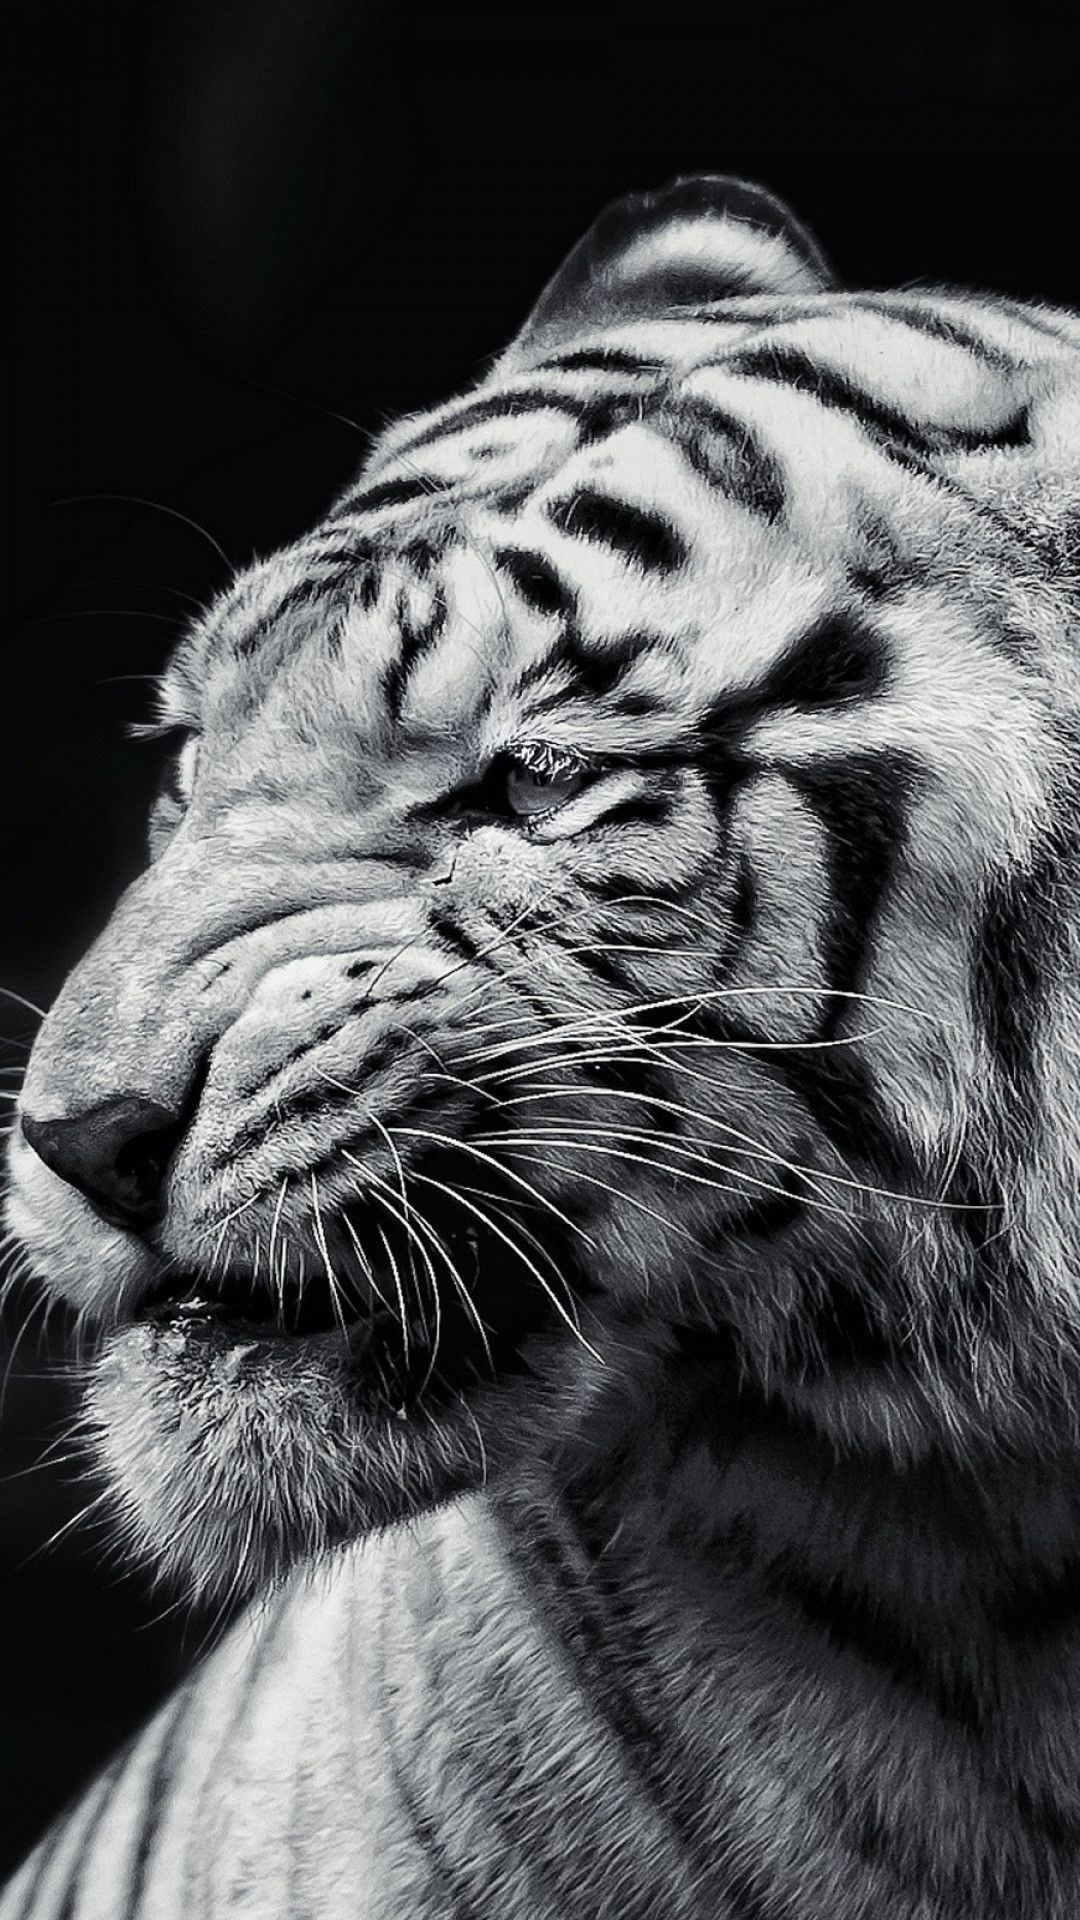 Black And White Tiger Android Background Black And White Tiger Android Background Black And White Tiger Andr In 2020 Tiger Wallpaper White Tiger Tiger Pictures